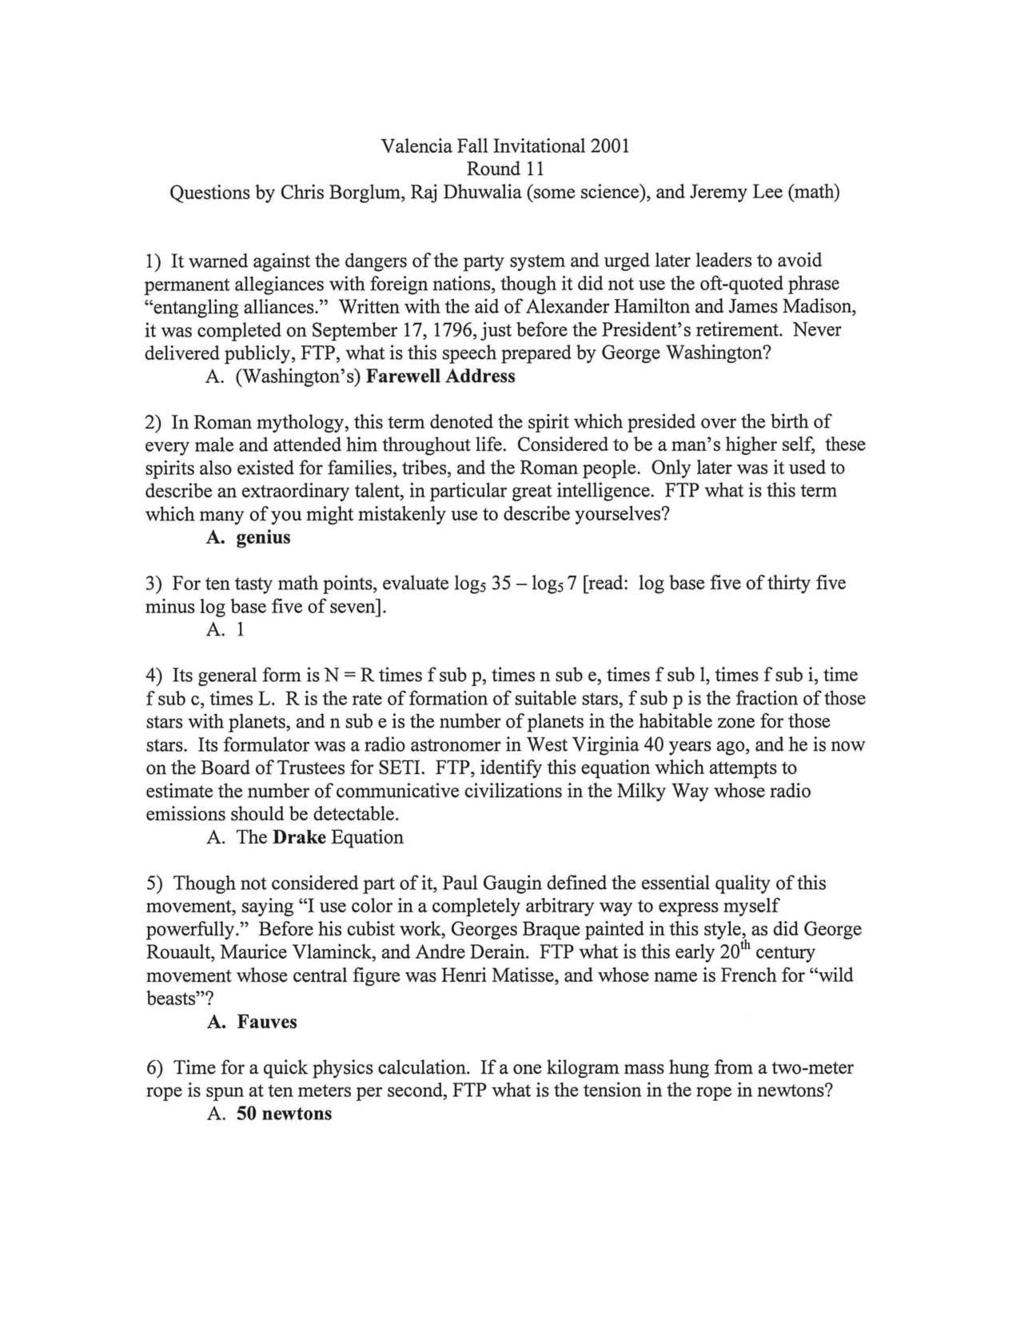 Valencia Fall Invitational 2001 Round 11 Questions by Chris Borglum, Raj Dhuwalia (some science), and Jeremy Lee (math) 1) It warned against the dangers of the party system and urged later leaders to